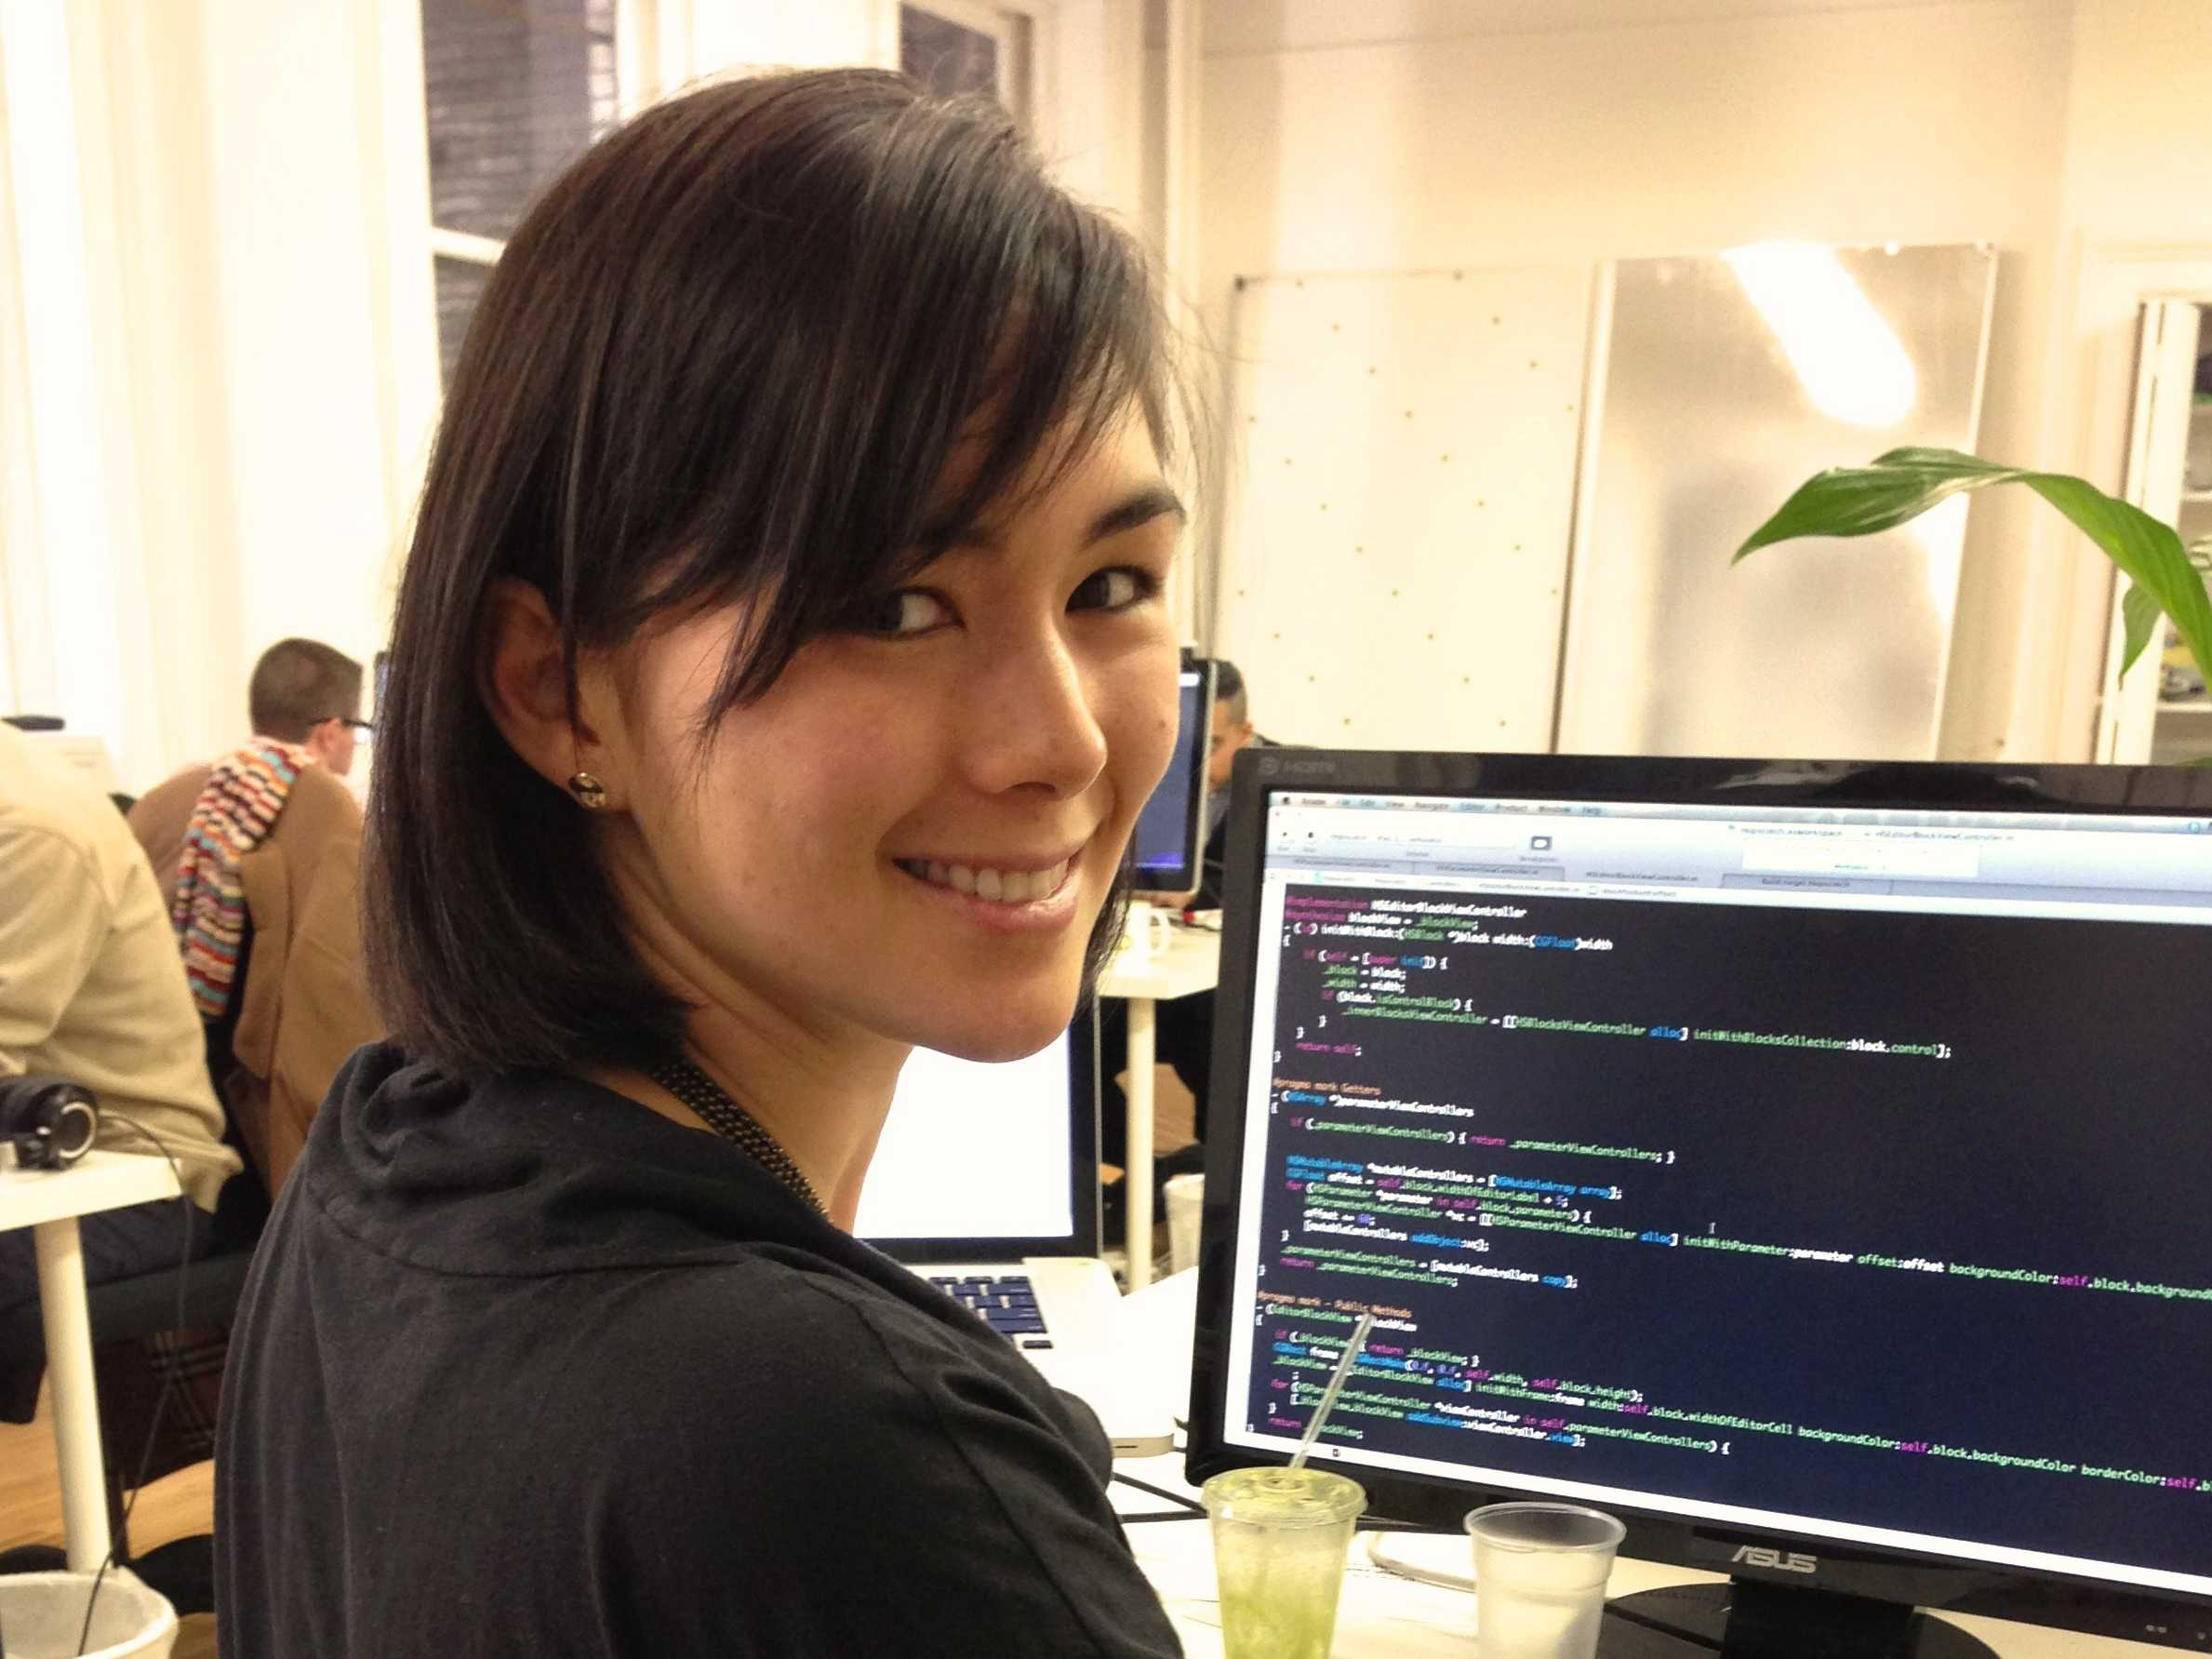 female developer coder